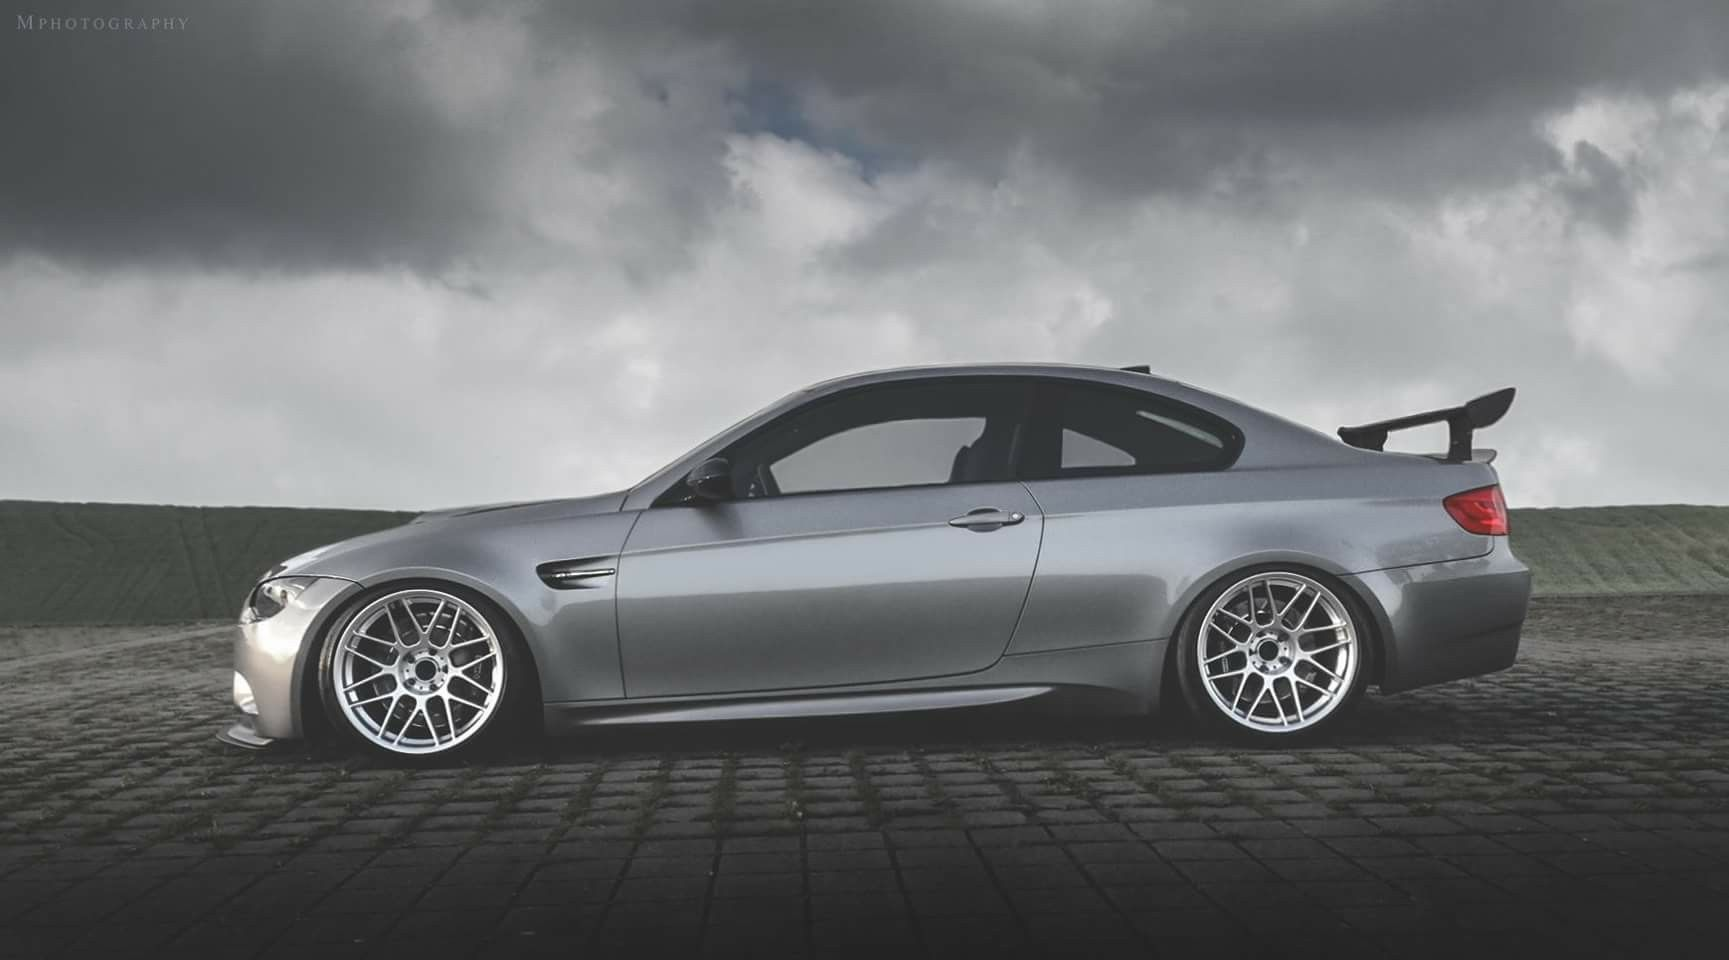 Bmw E92 M3 Grey Apex Wheels With Images Bmw Lowrider Cars